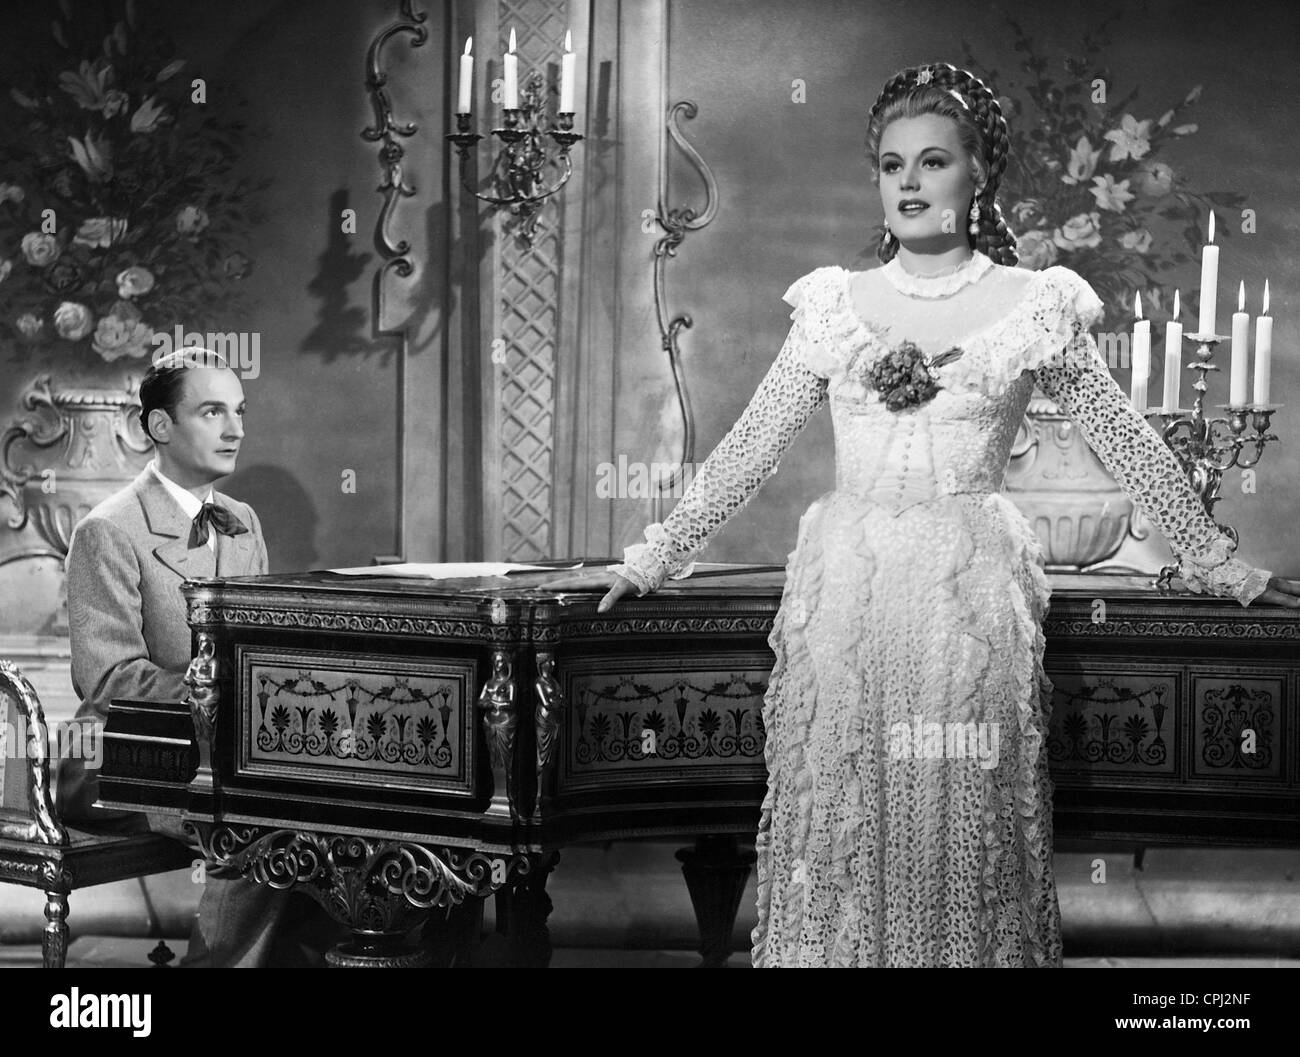 Willi Forst and Maria Holst in 'Operette', 1940 - Stock Image